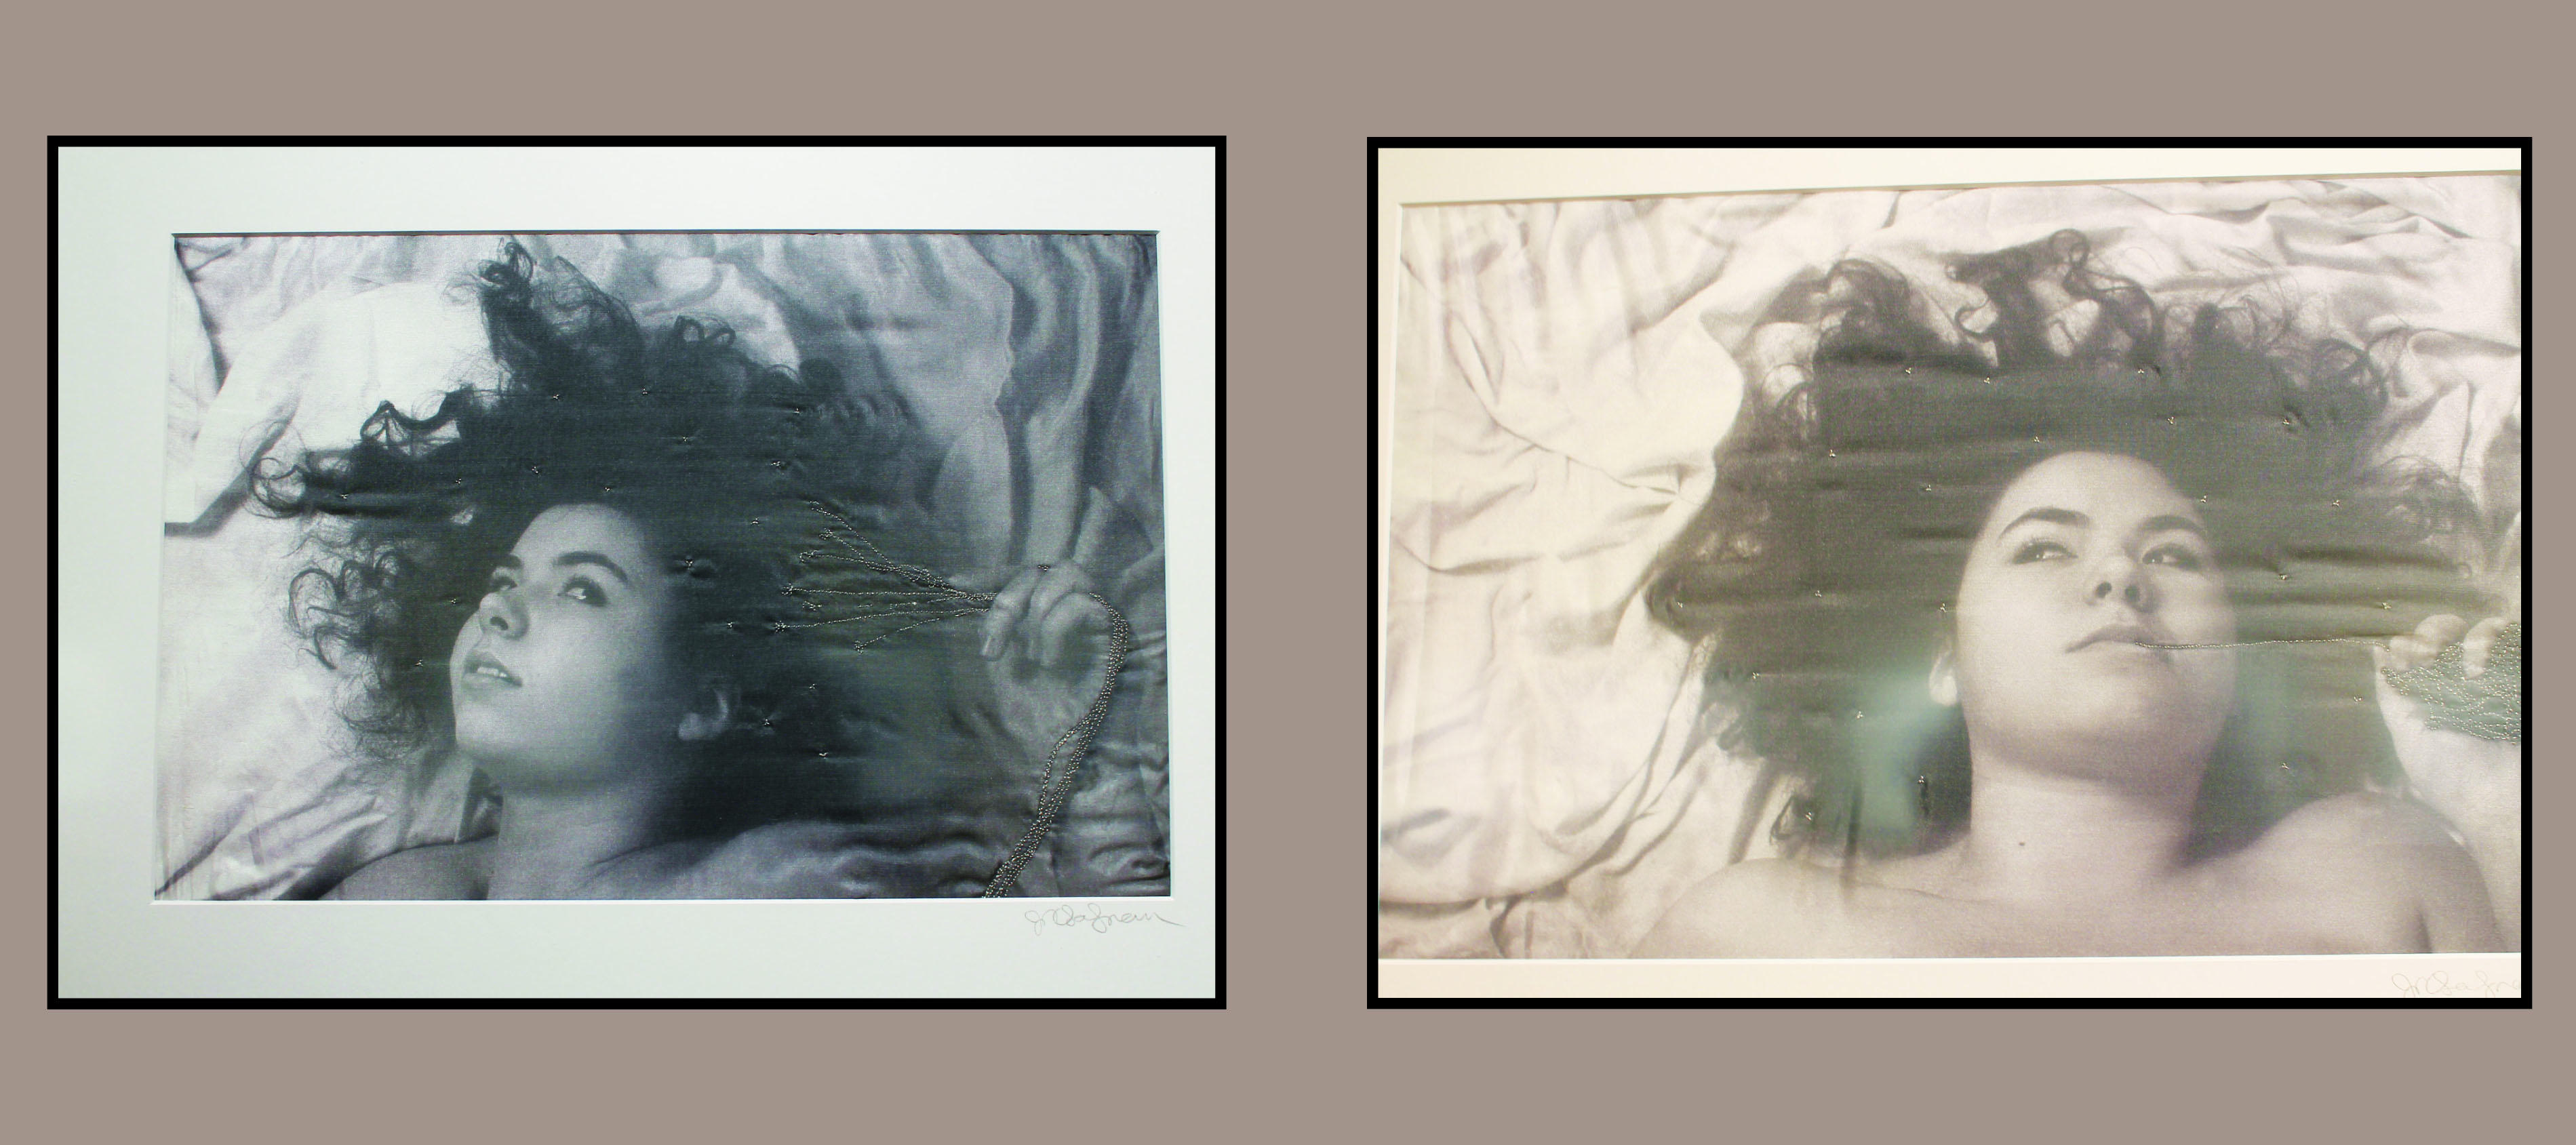 """Left: """"Collection of Thoughts"""" by Jennifer Salzman. Right: """"Contemplation"""" by Jennifer Salzman."""